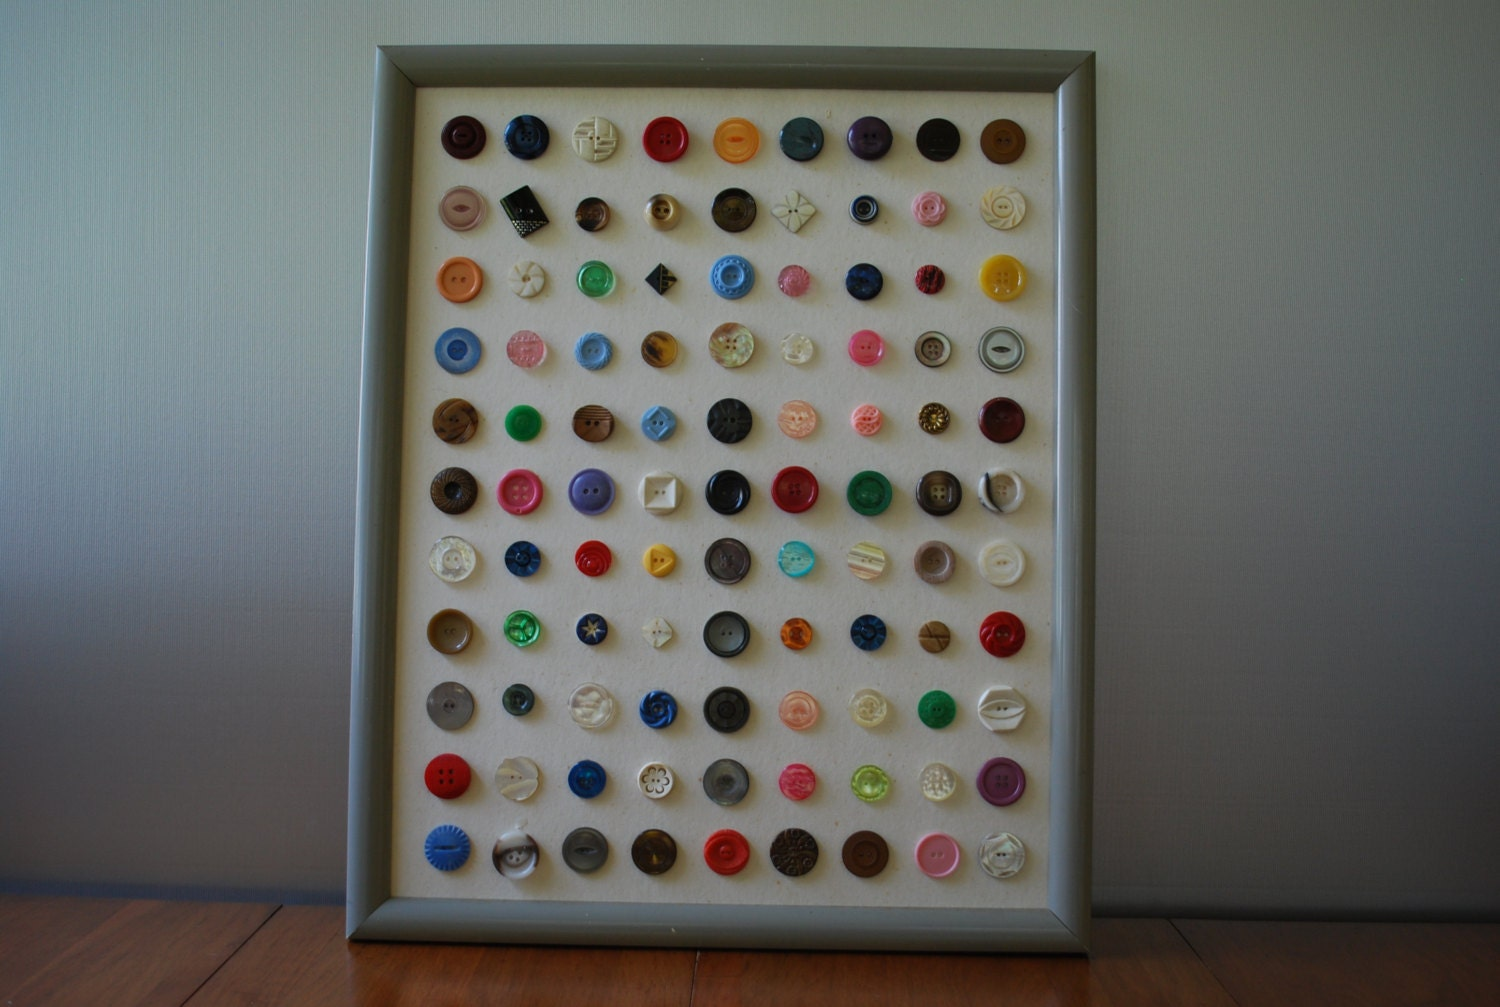 Wall Art For Craft Room : Button art vintage sewing room wall decor craft